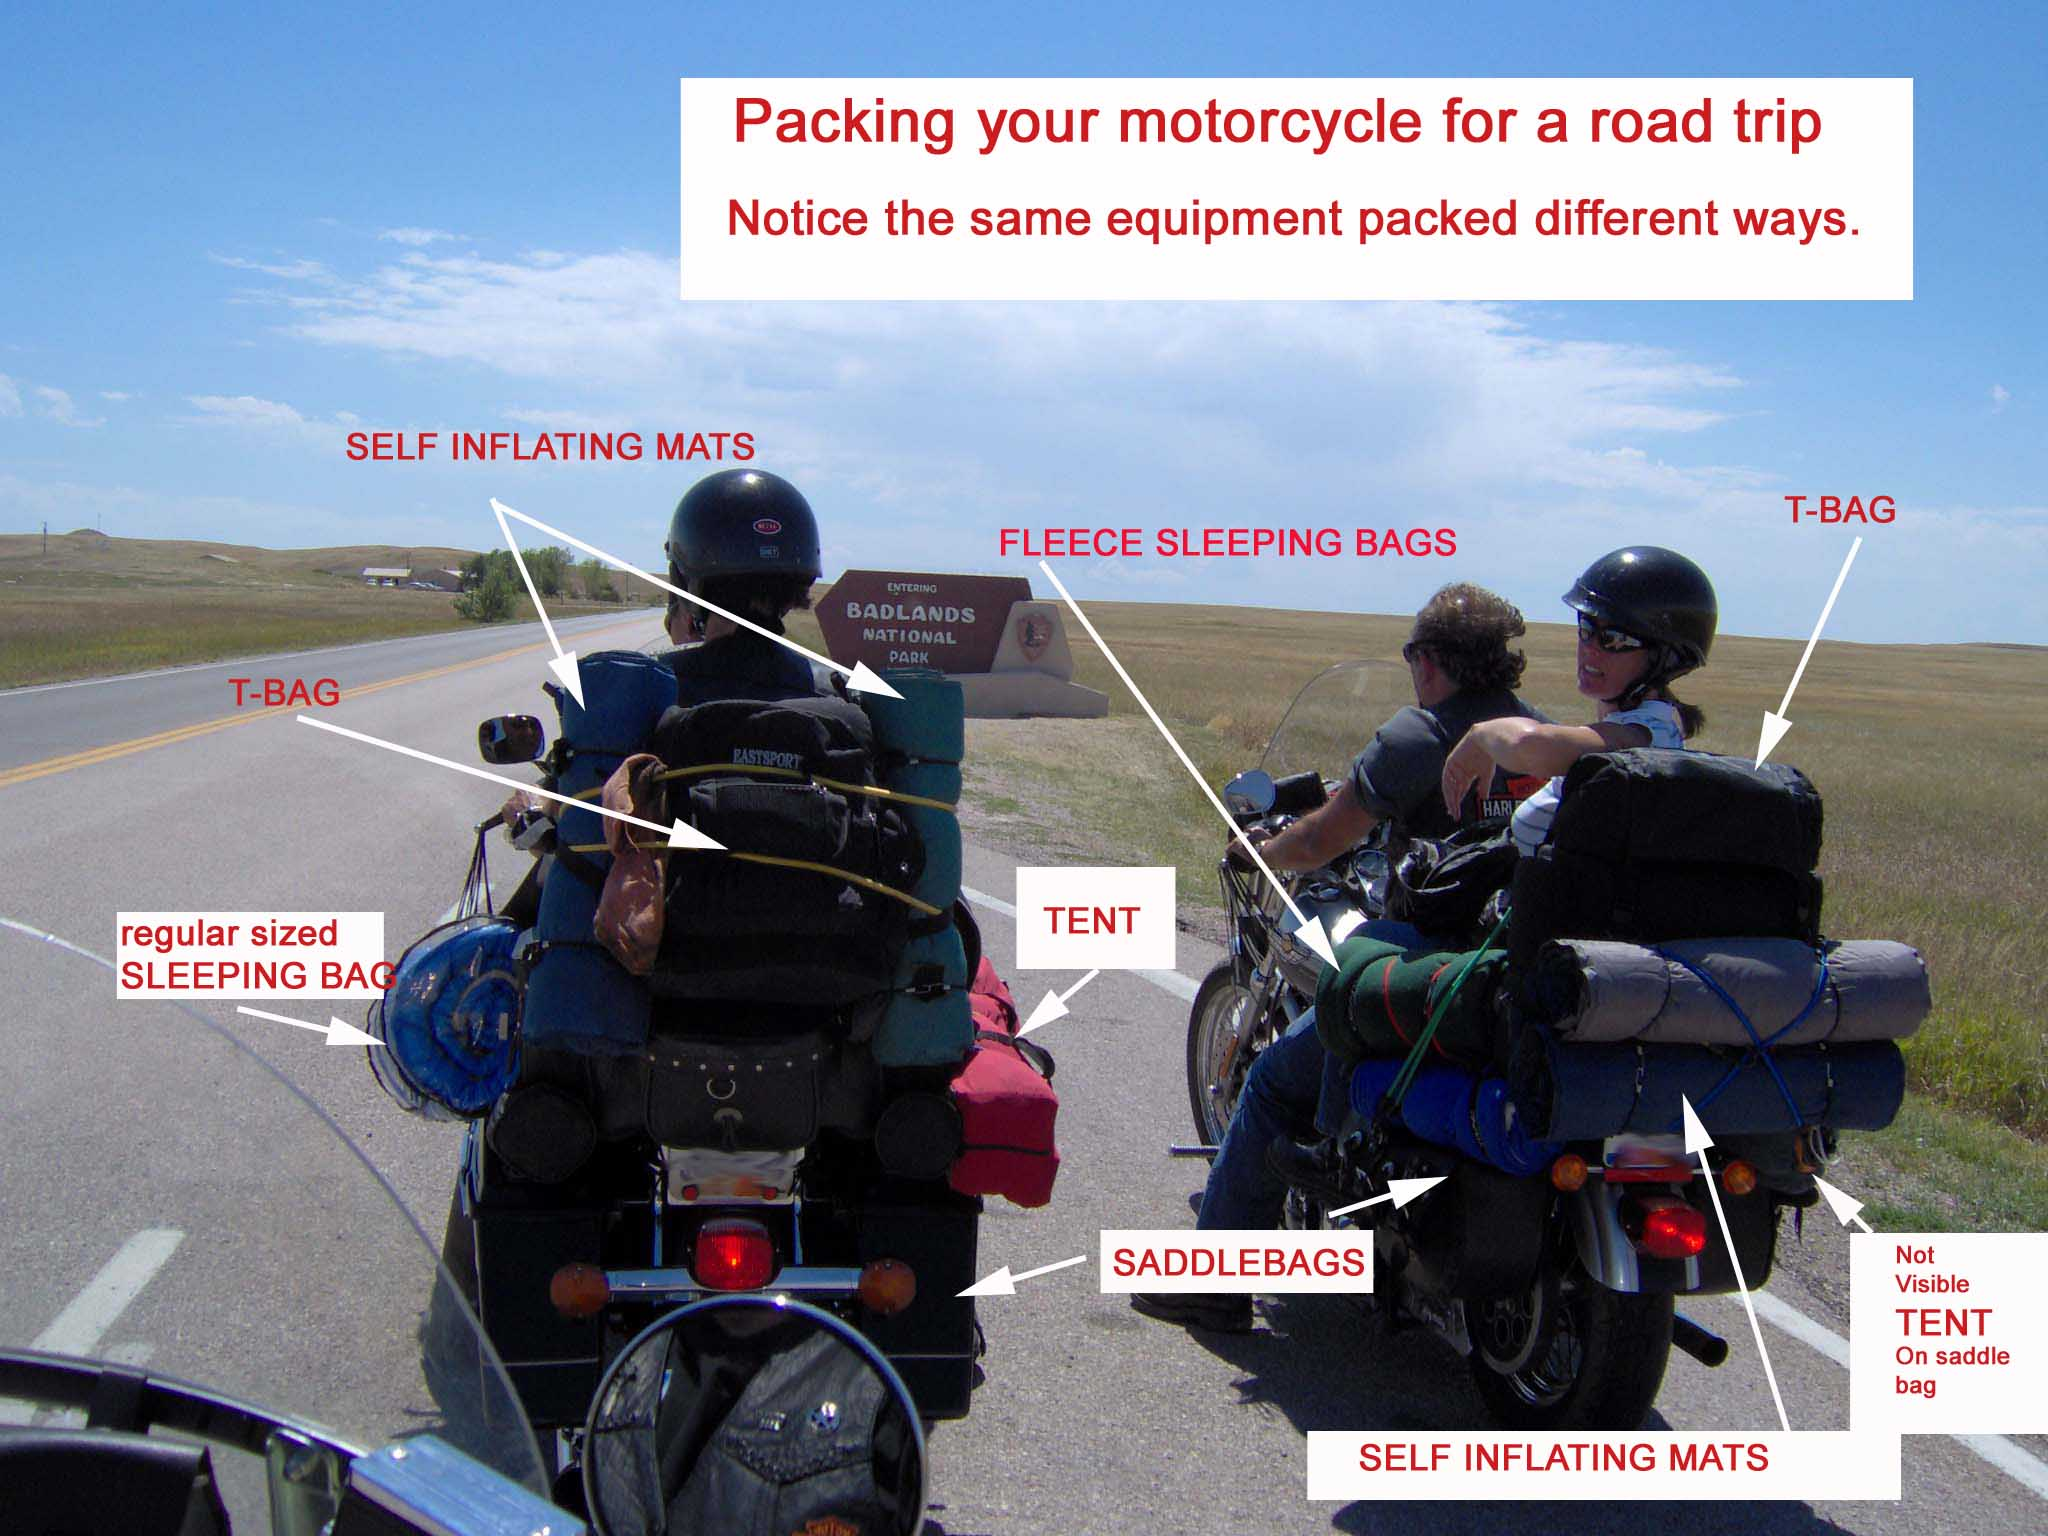 motorcycles packed for road trip